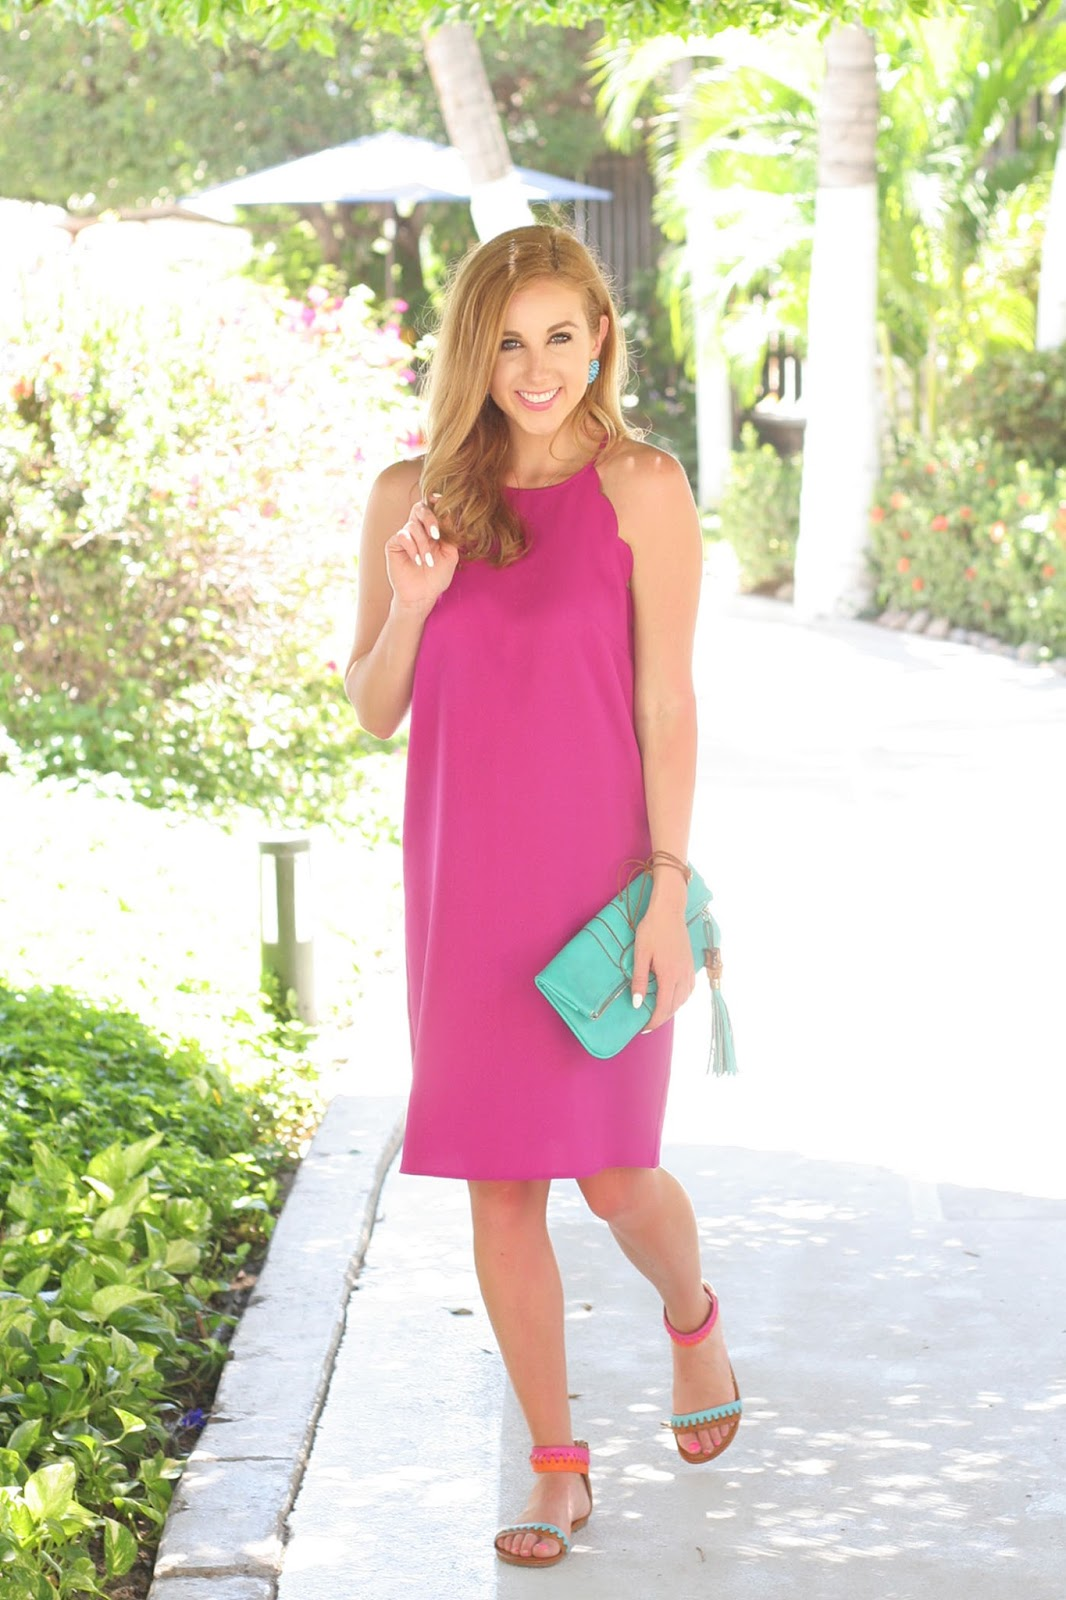 The-perfect-resort-summer-vacation-dress-hot-pink